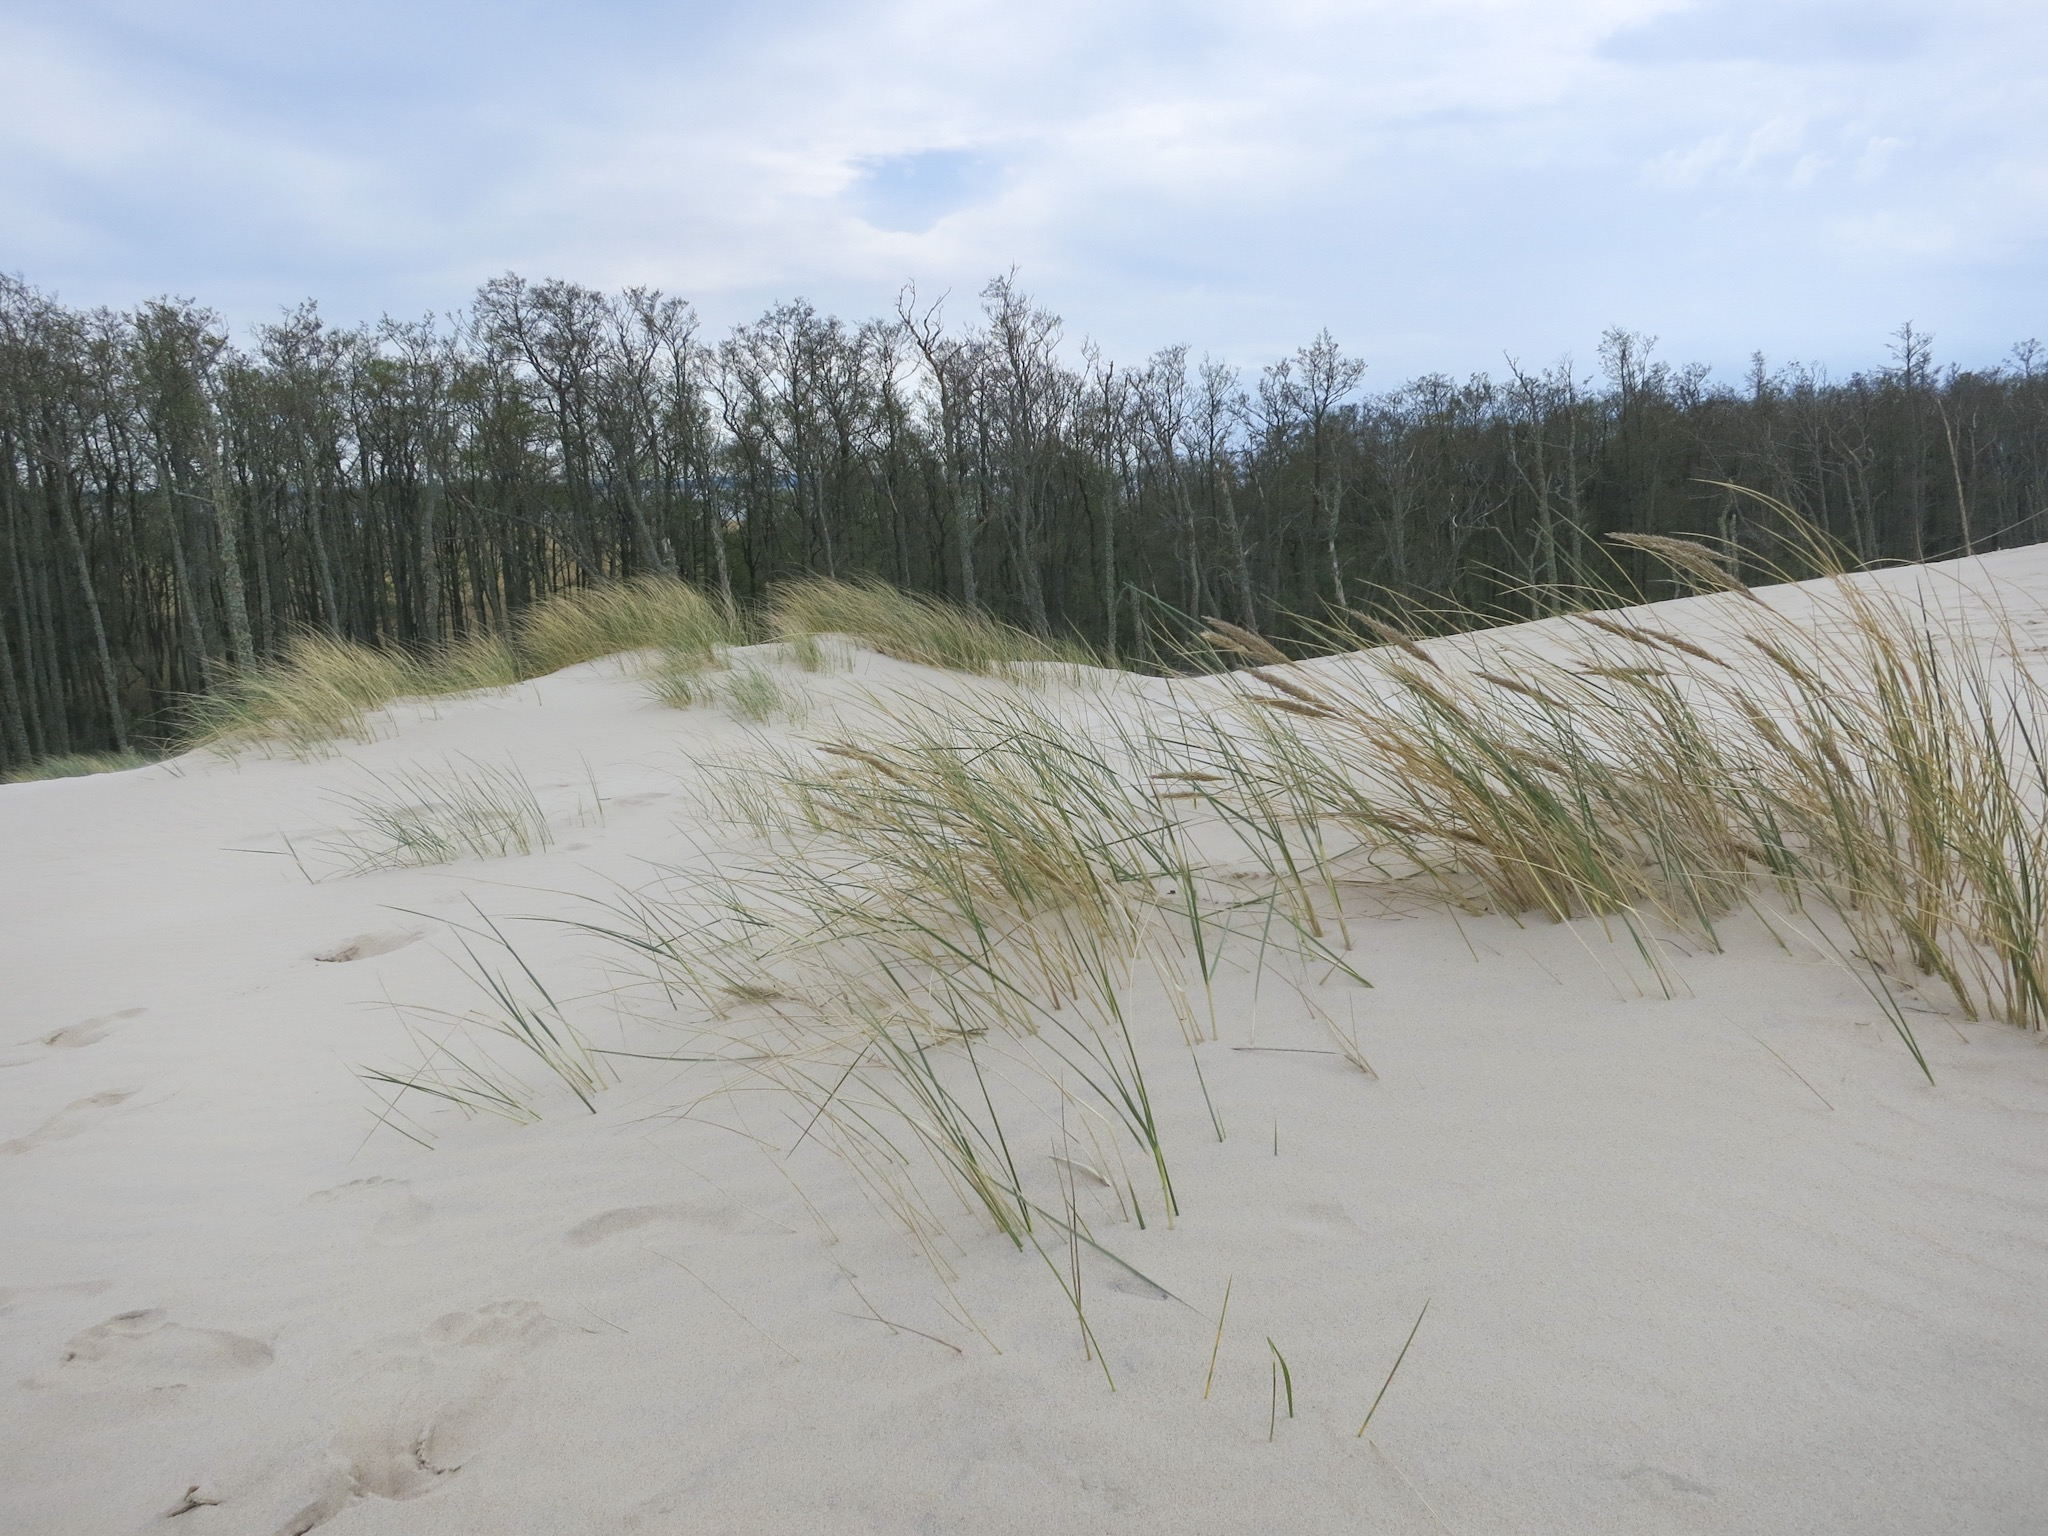 Grasses in front of the Alder forest on the eastern edge of the Łackca Sand Dune In Słowiński National Park